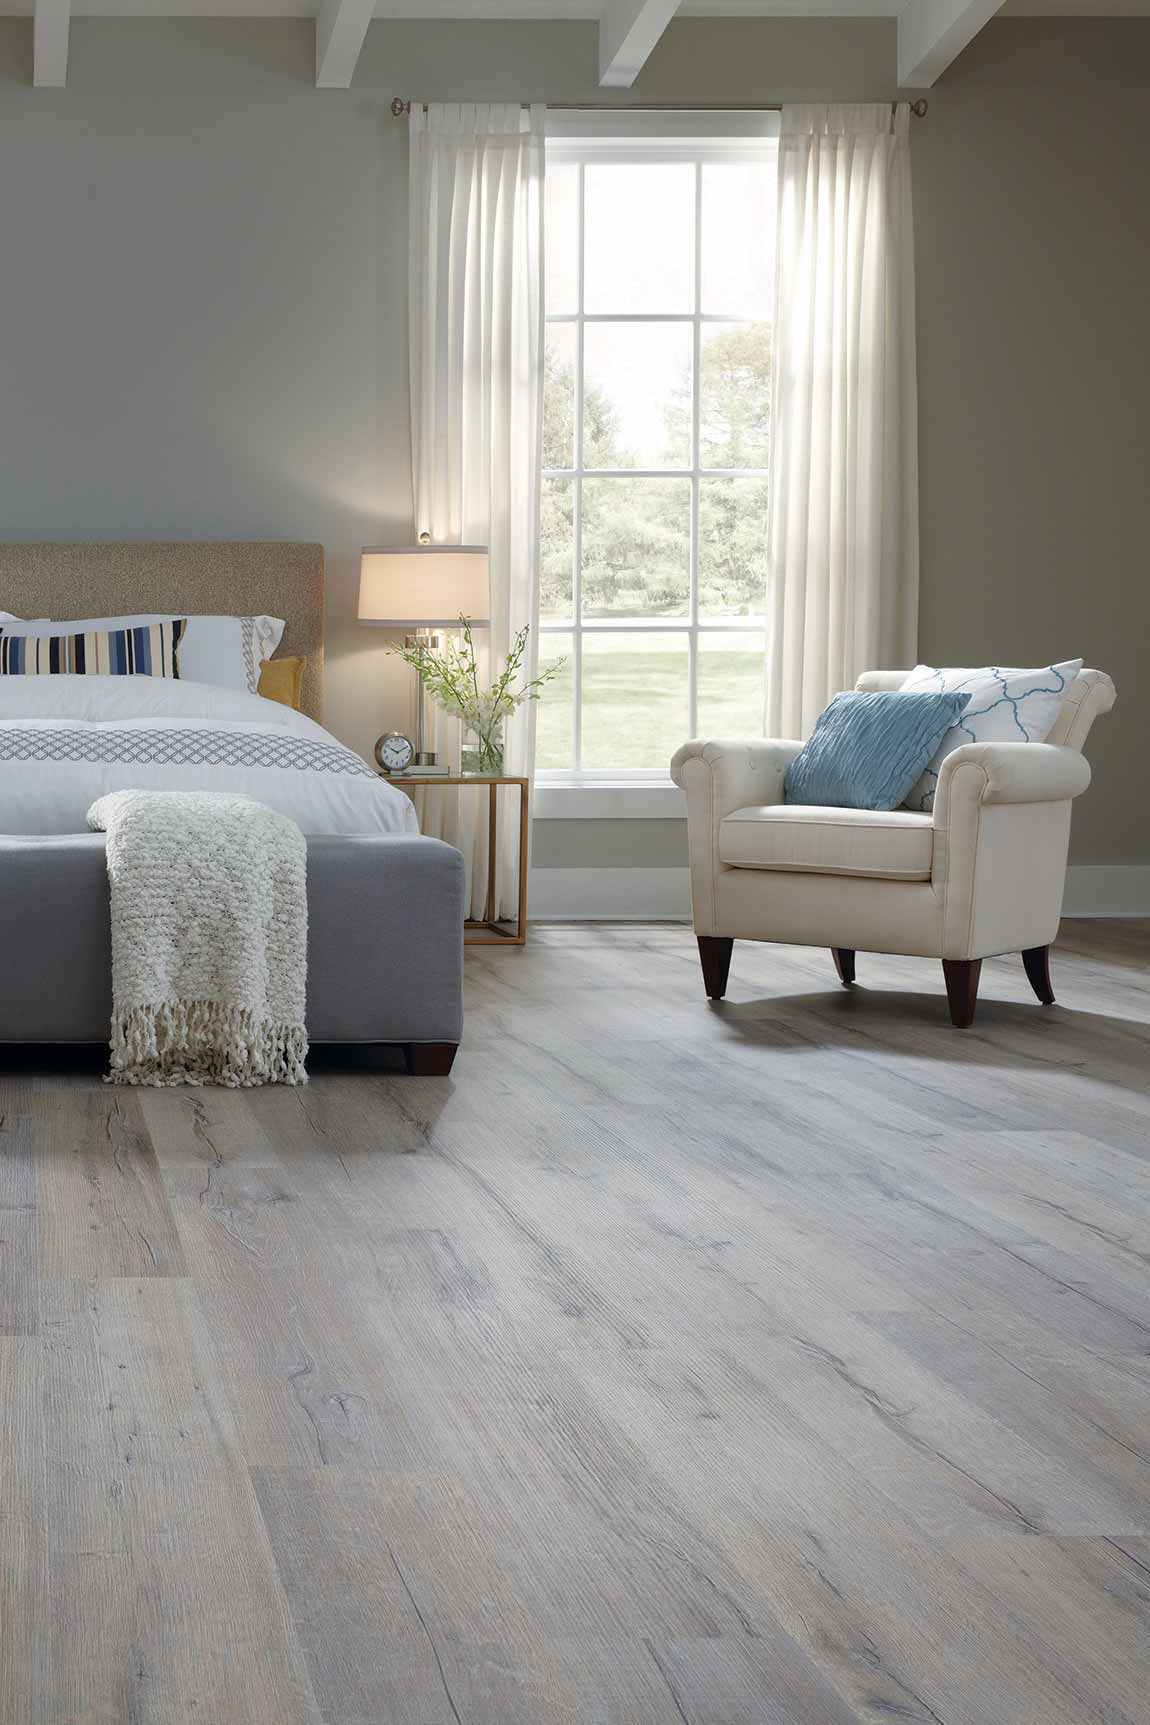 Tile Modern & Contemporary Bedroom Flooring Designs  Flooring America